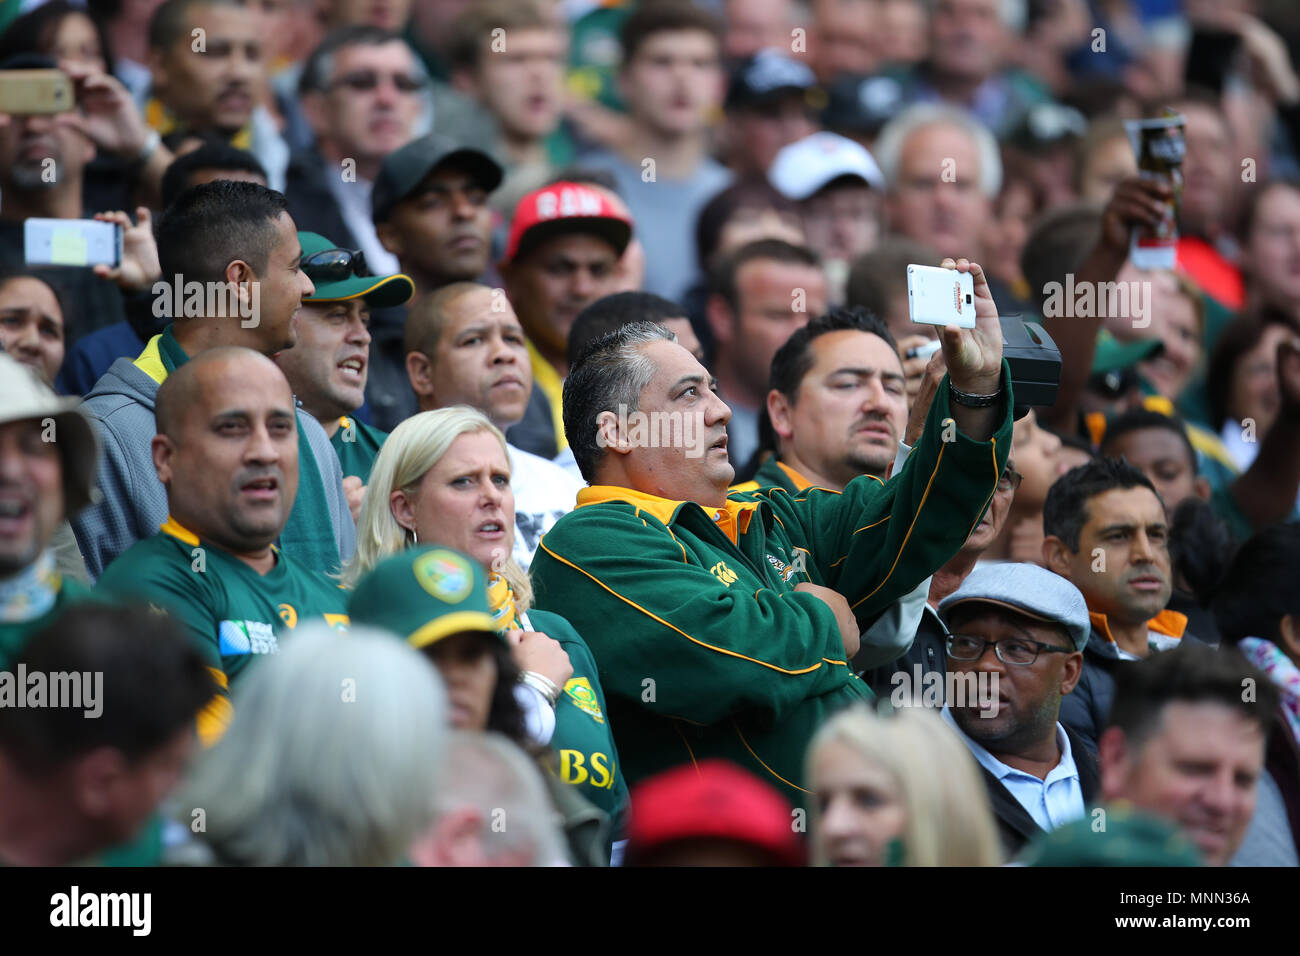 CAPE TOWN, SOUTH AFRICA - Saturday 7 October 2017,  a spectator sings and films the singing of the national anthem during the Castle Lager Rugby Champ - Stock Image